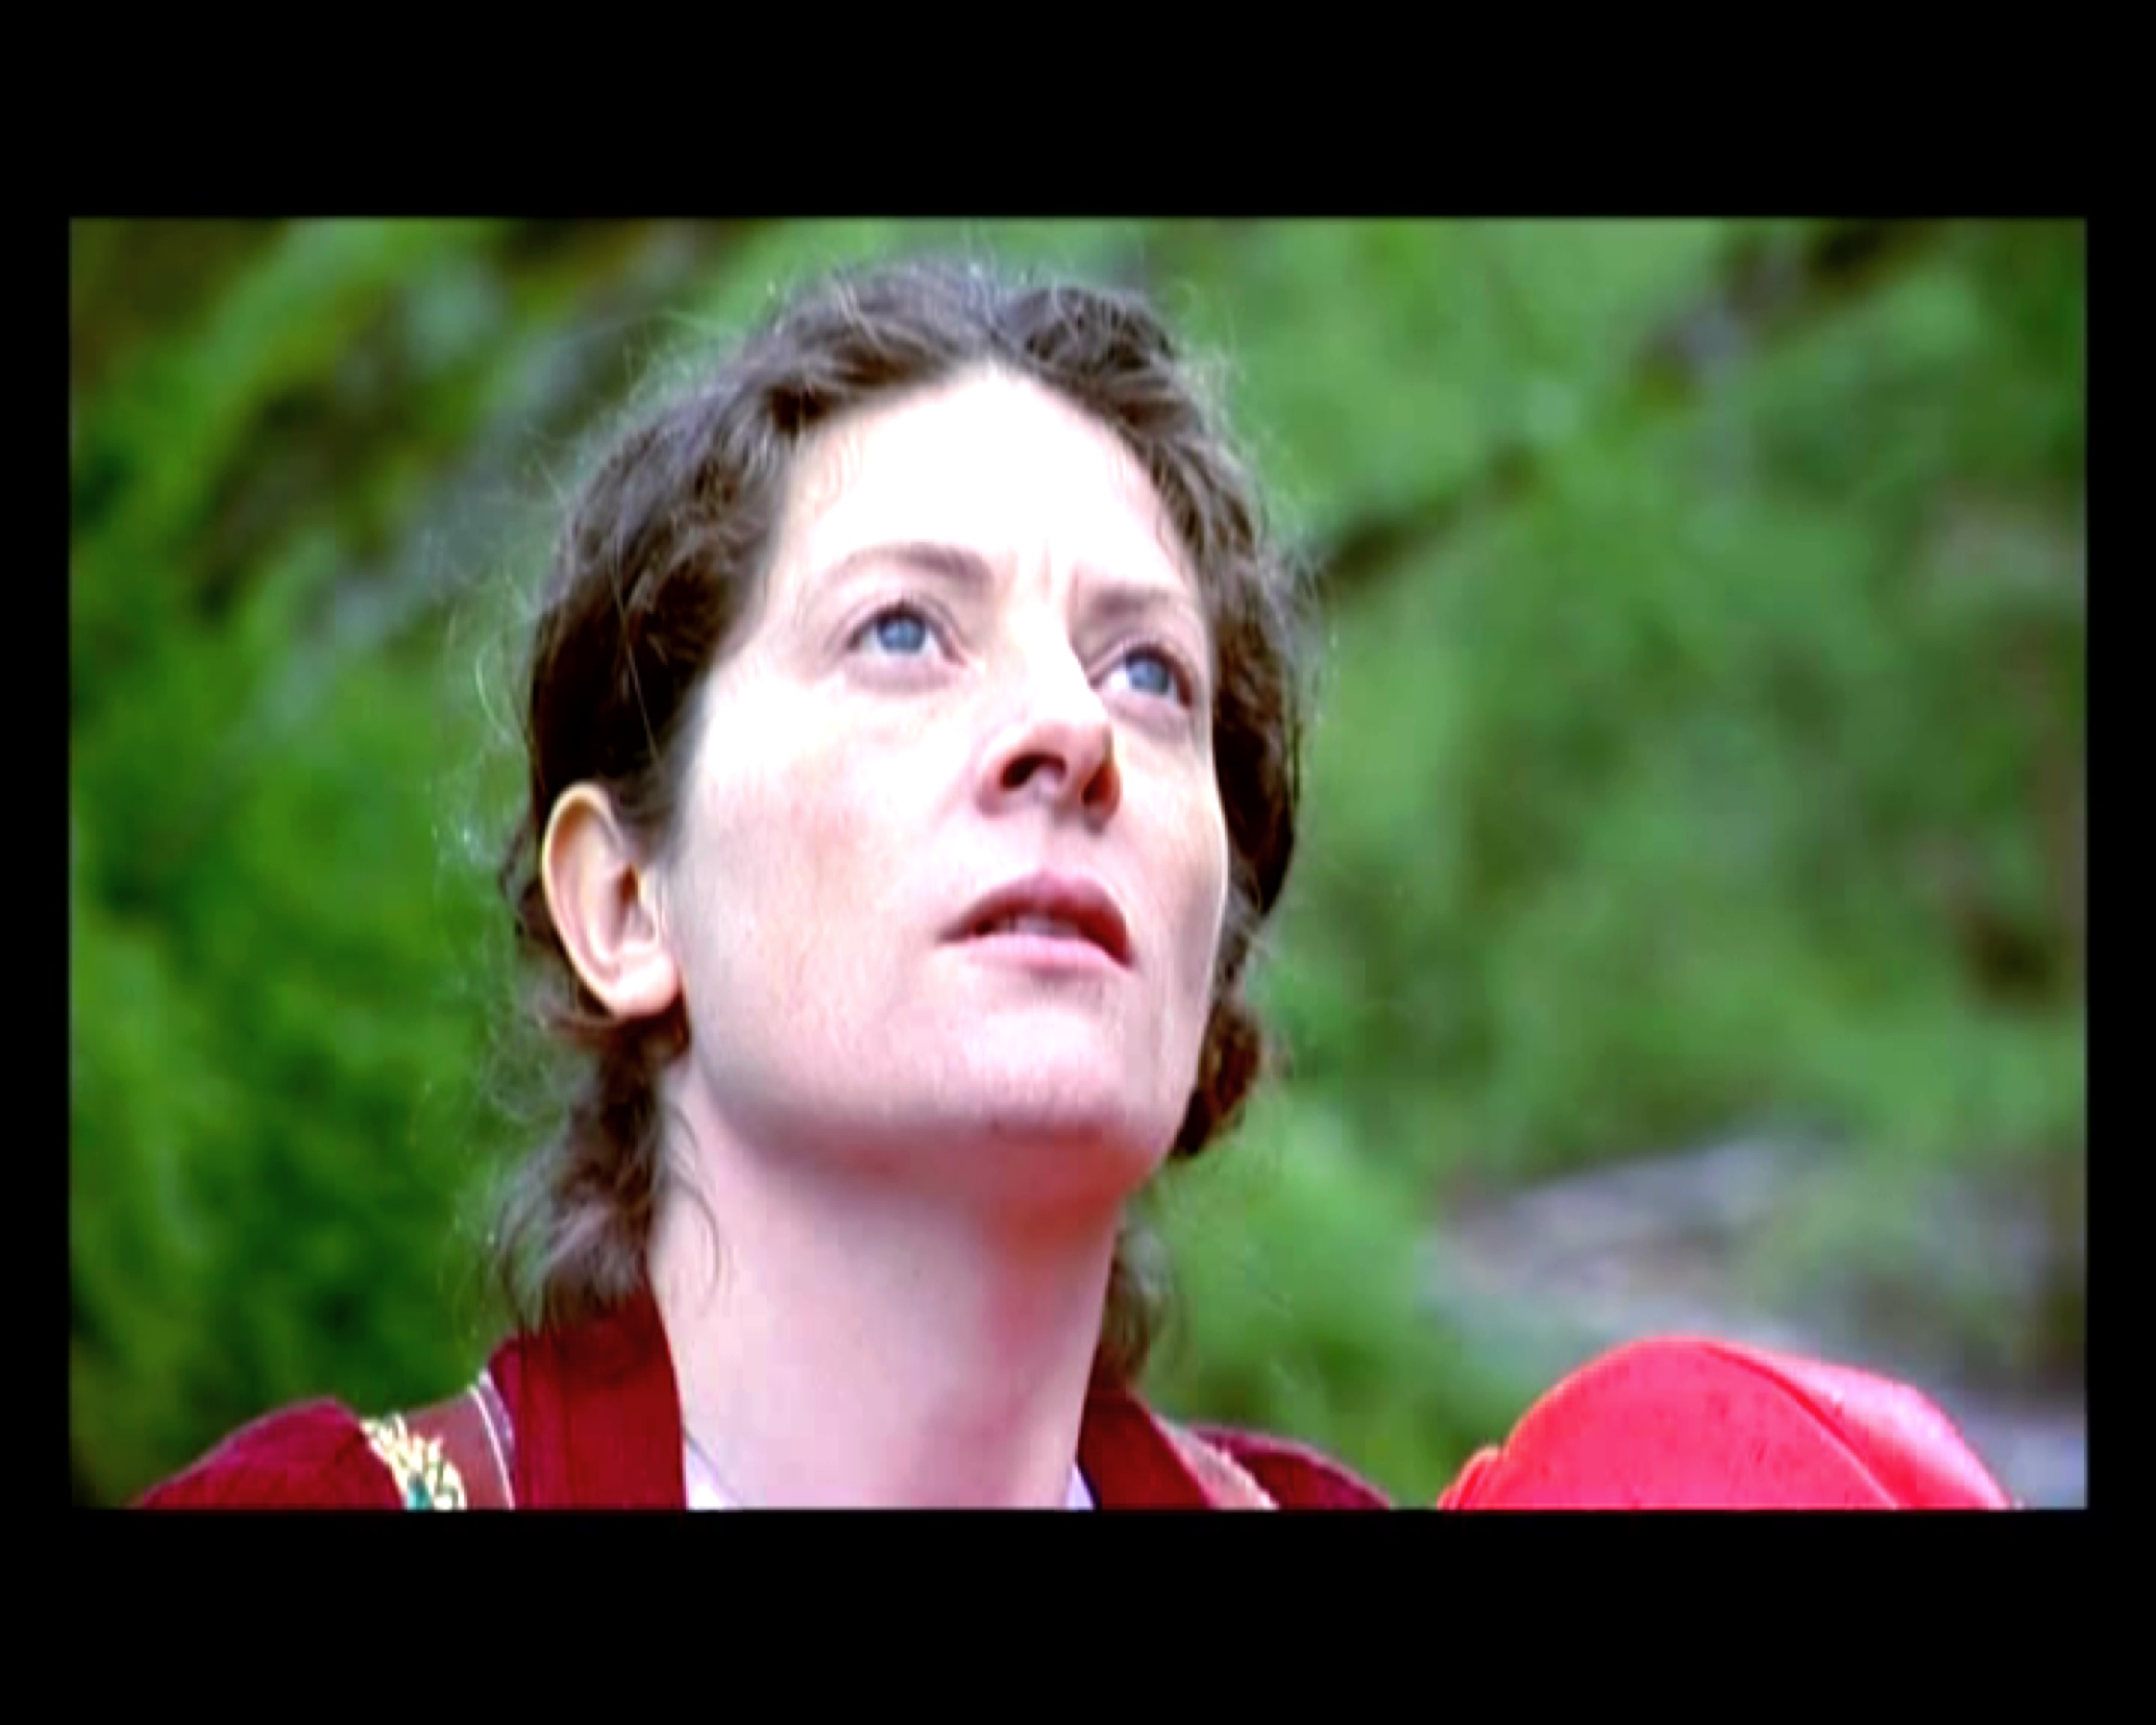 Coralie Desbrouses in Miserere (2006)